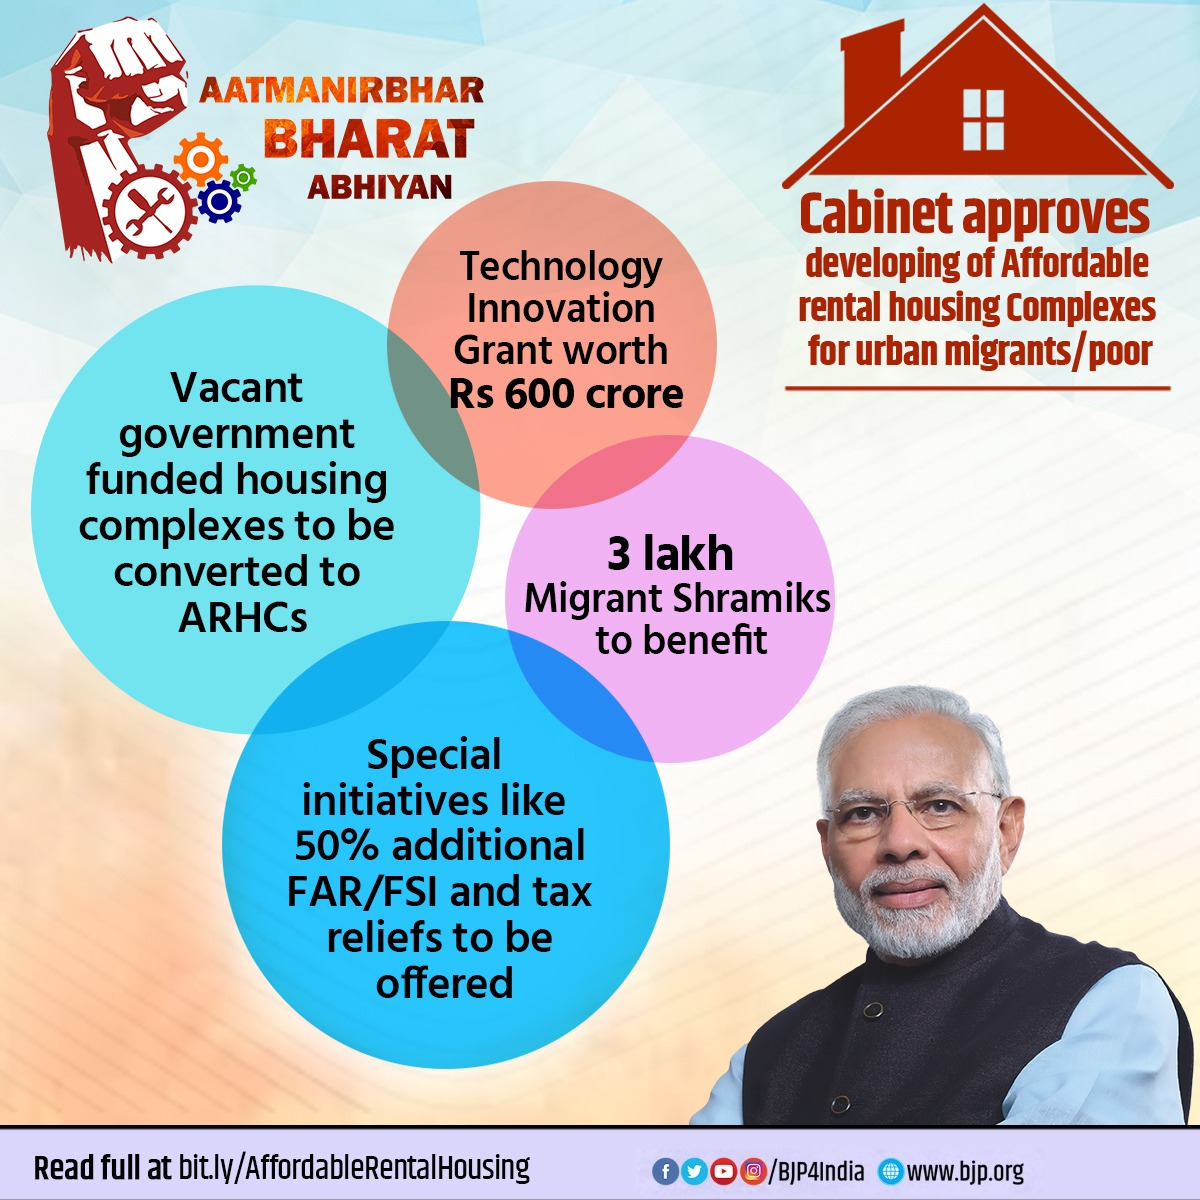 Cabinet approves developing of affordable rental housing complexes for urban migrants/poor. 🏠Vacant government funded housing complexes to be converted to ARHCs. 🏠3 lakh migrant shramiks to benefit.